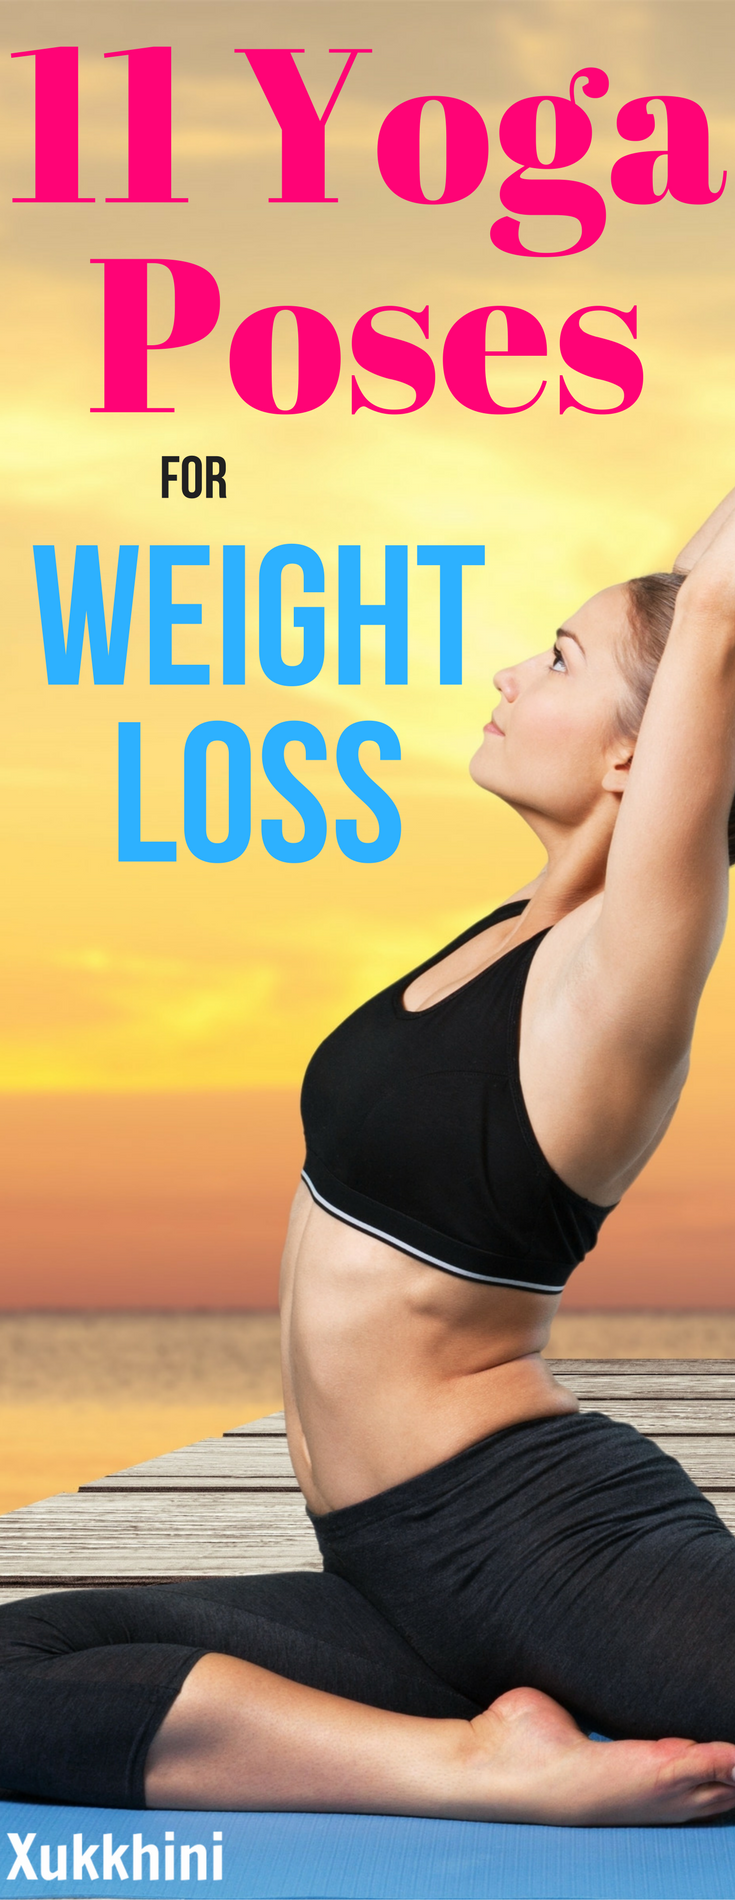 Does working out everyday help lose weight picture 7